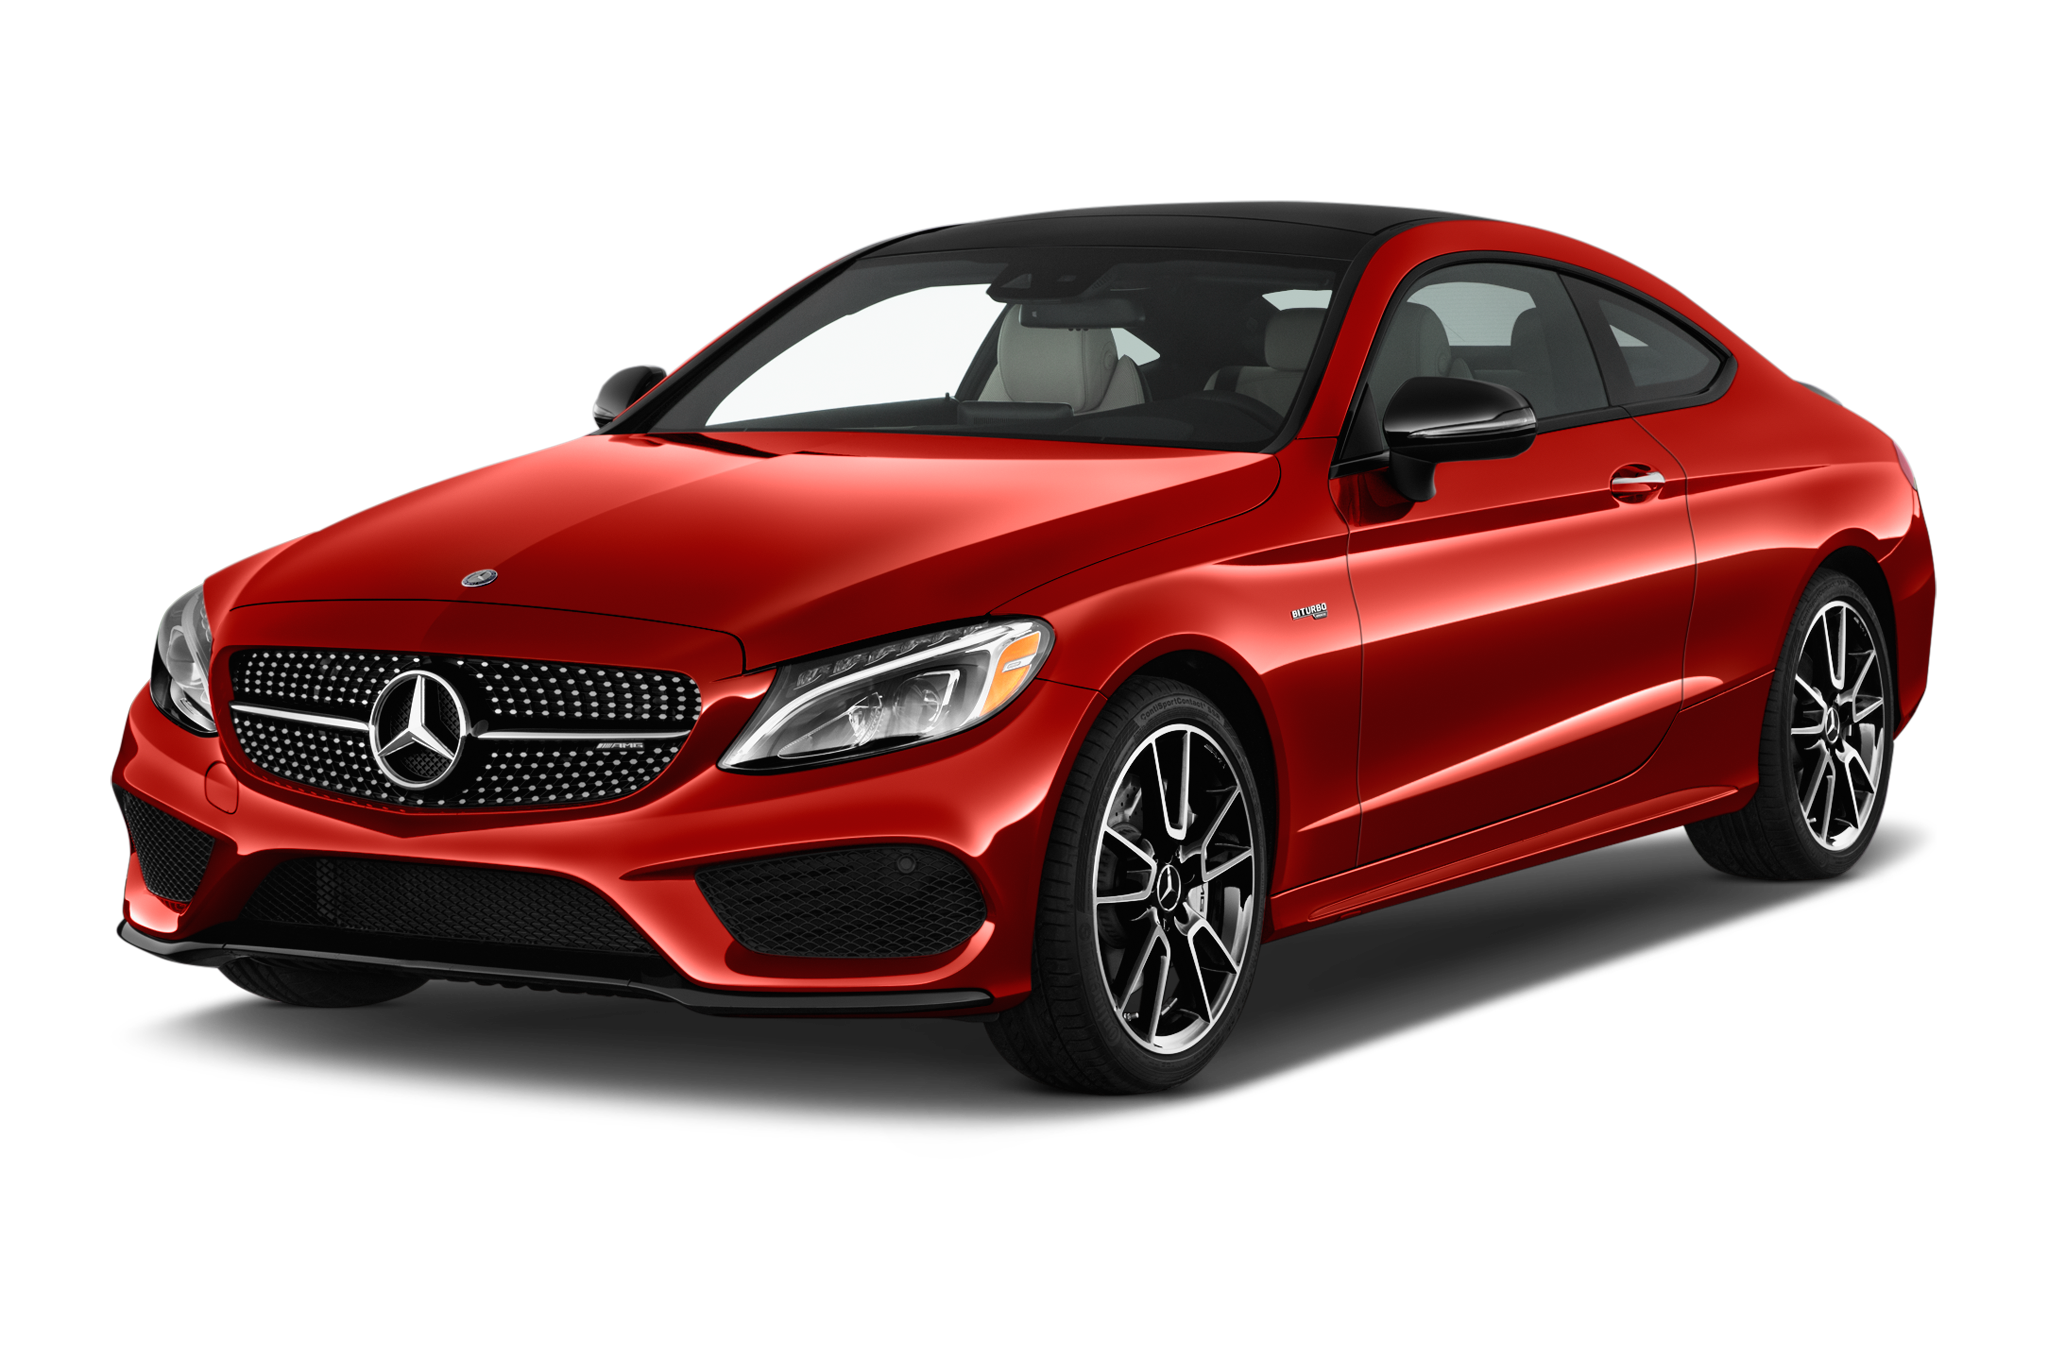 mercedes benz amg cars class c43 coupe maybach c63 luxury alamo cabriolet msn bosch week motortrend rental options dtm variant